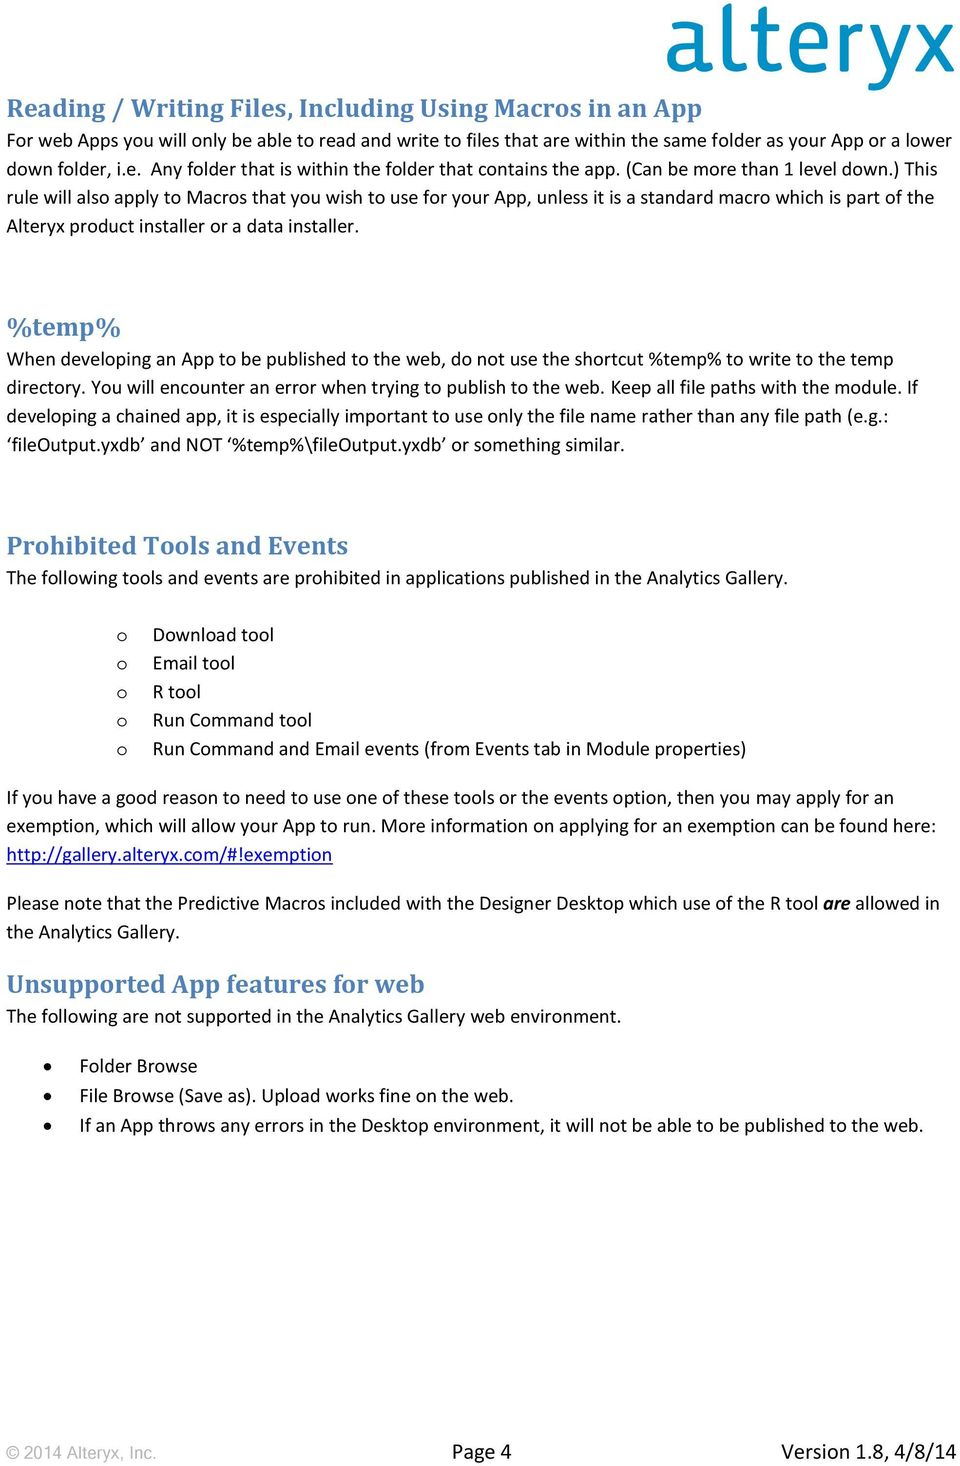 App Building Guidelines - PDF